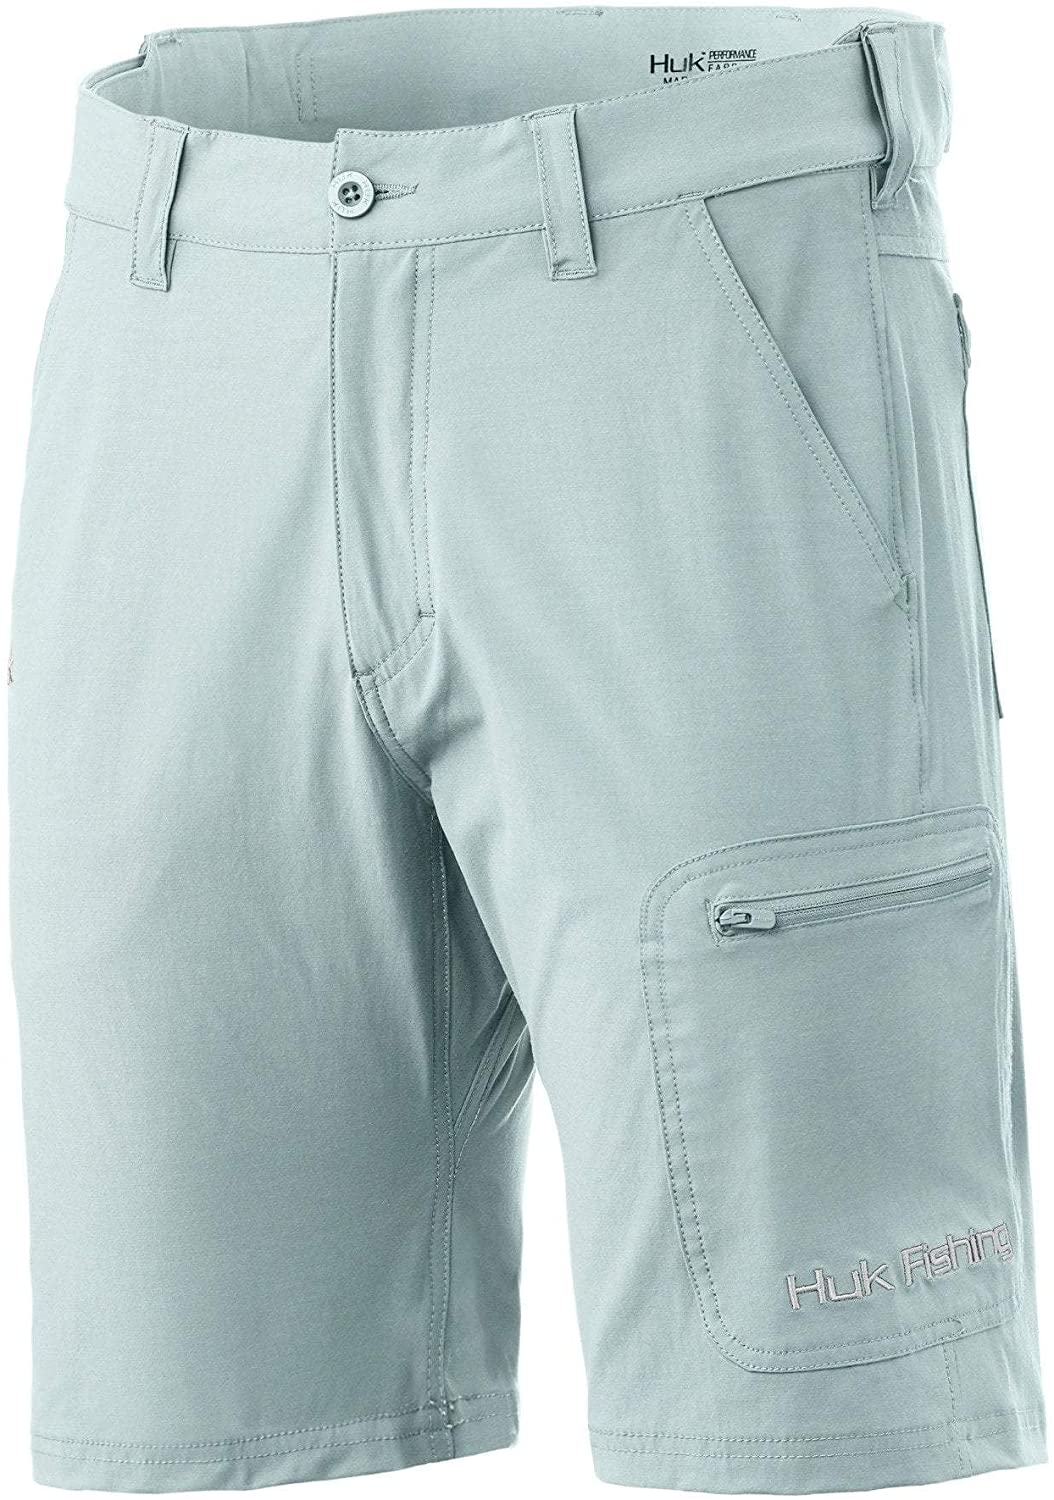 Performance Quick-Drying Short with 30 UPF Sun Protection HUK Womens Woven Dock Short